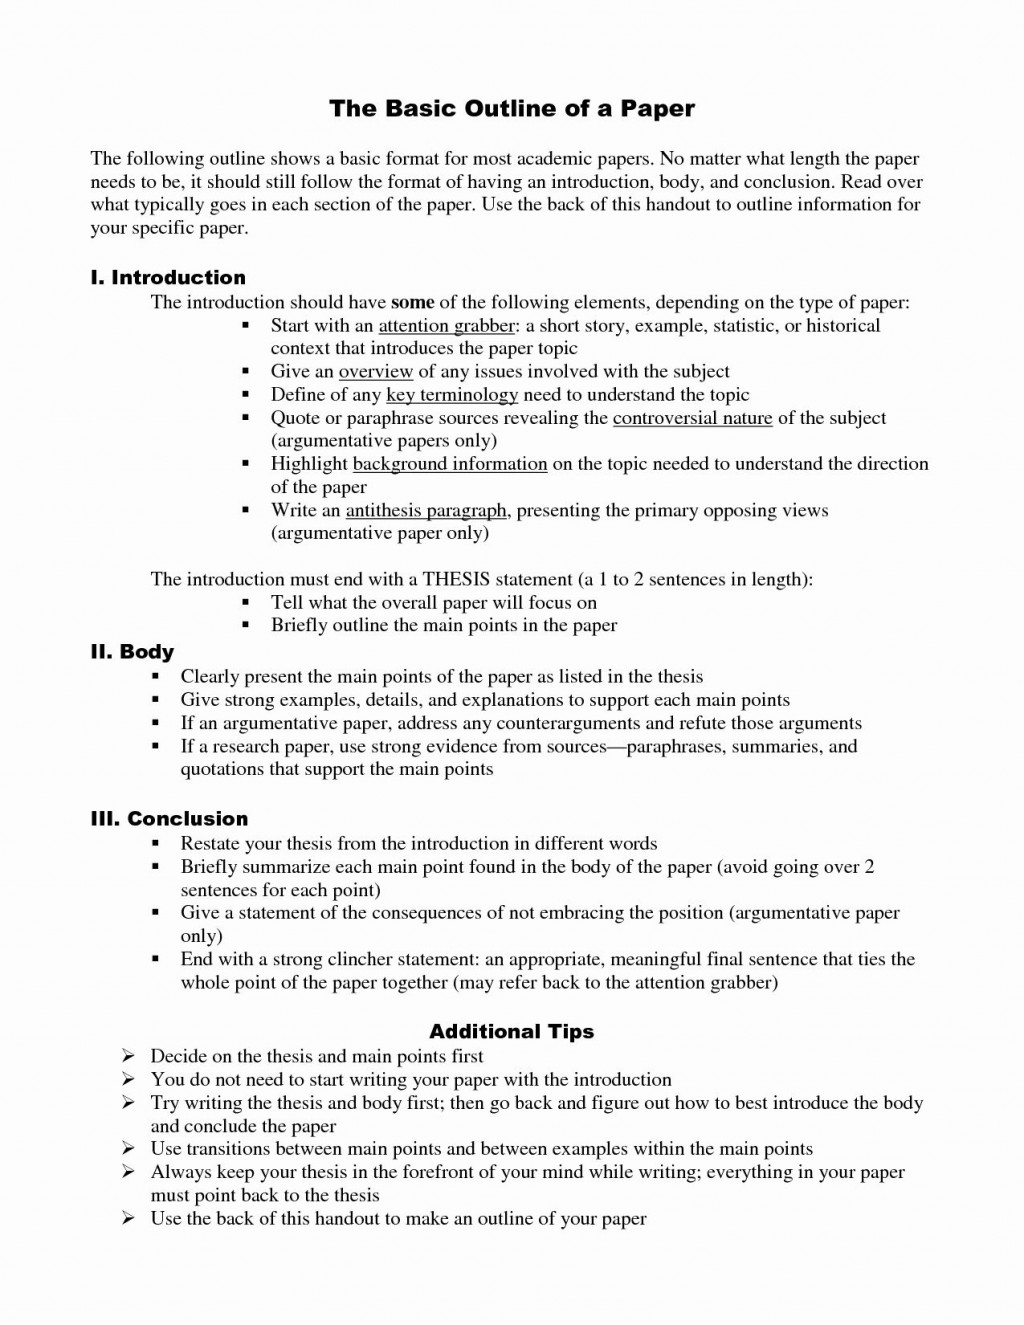 002 Post Traumatic Stress Disorder Research Paper Outline Argumentative Essay On Wondrous Topics Large